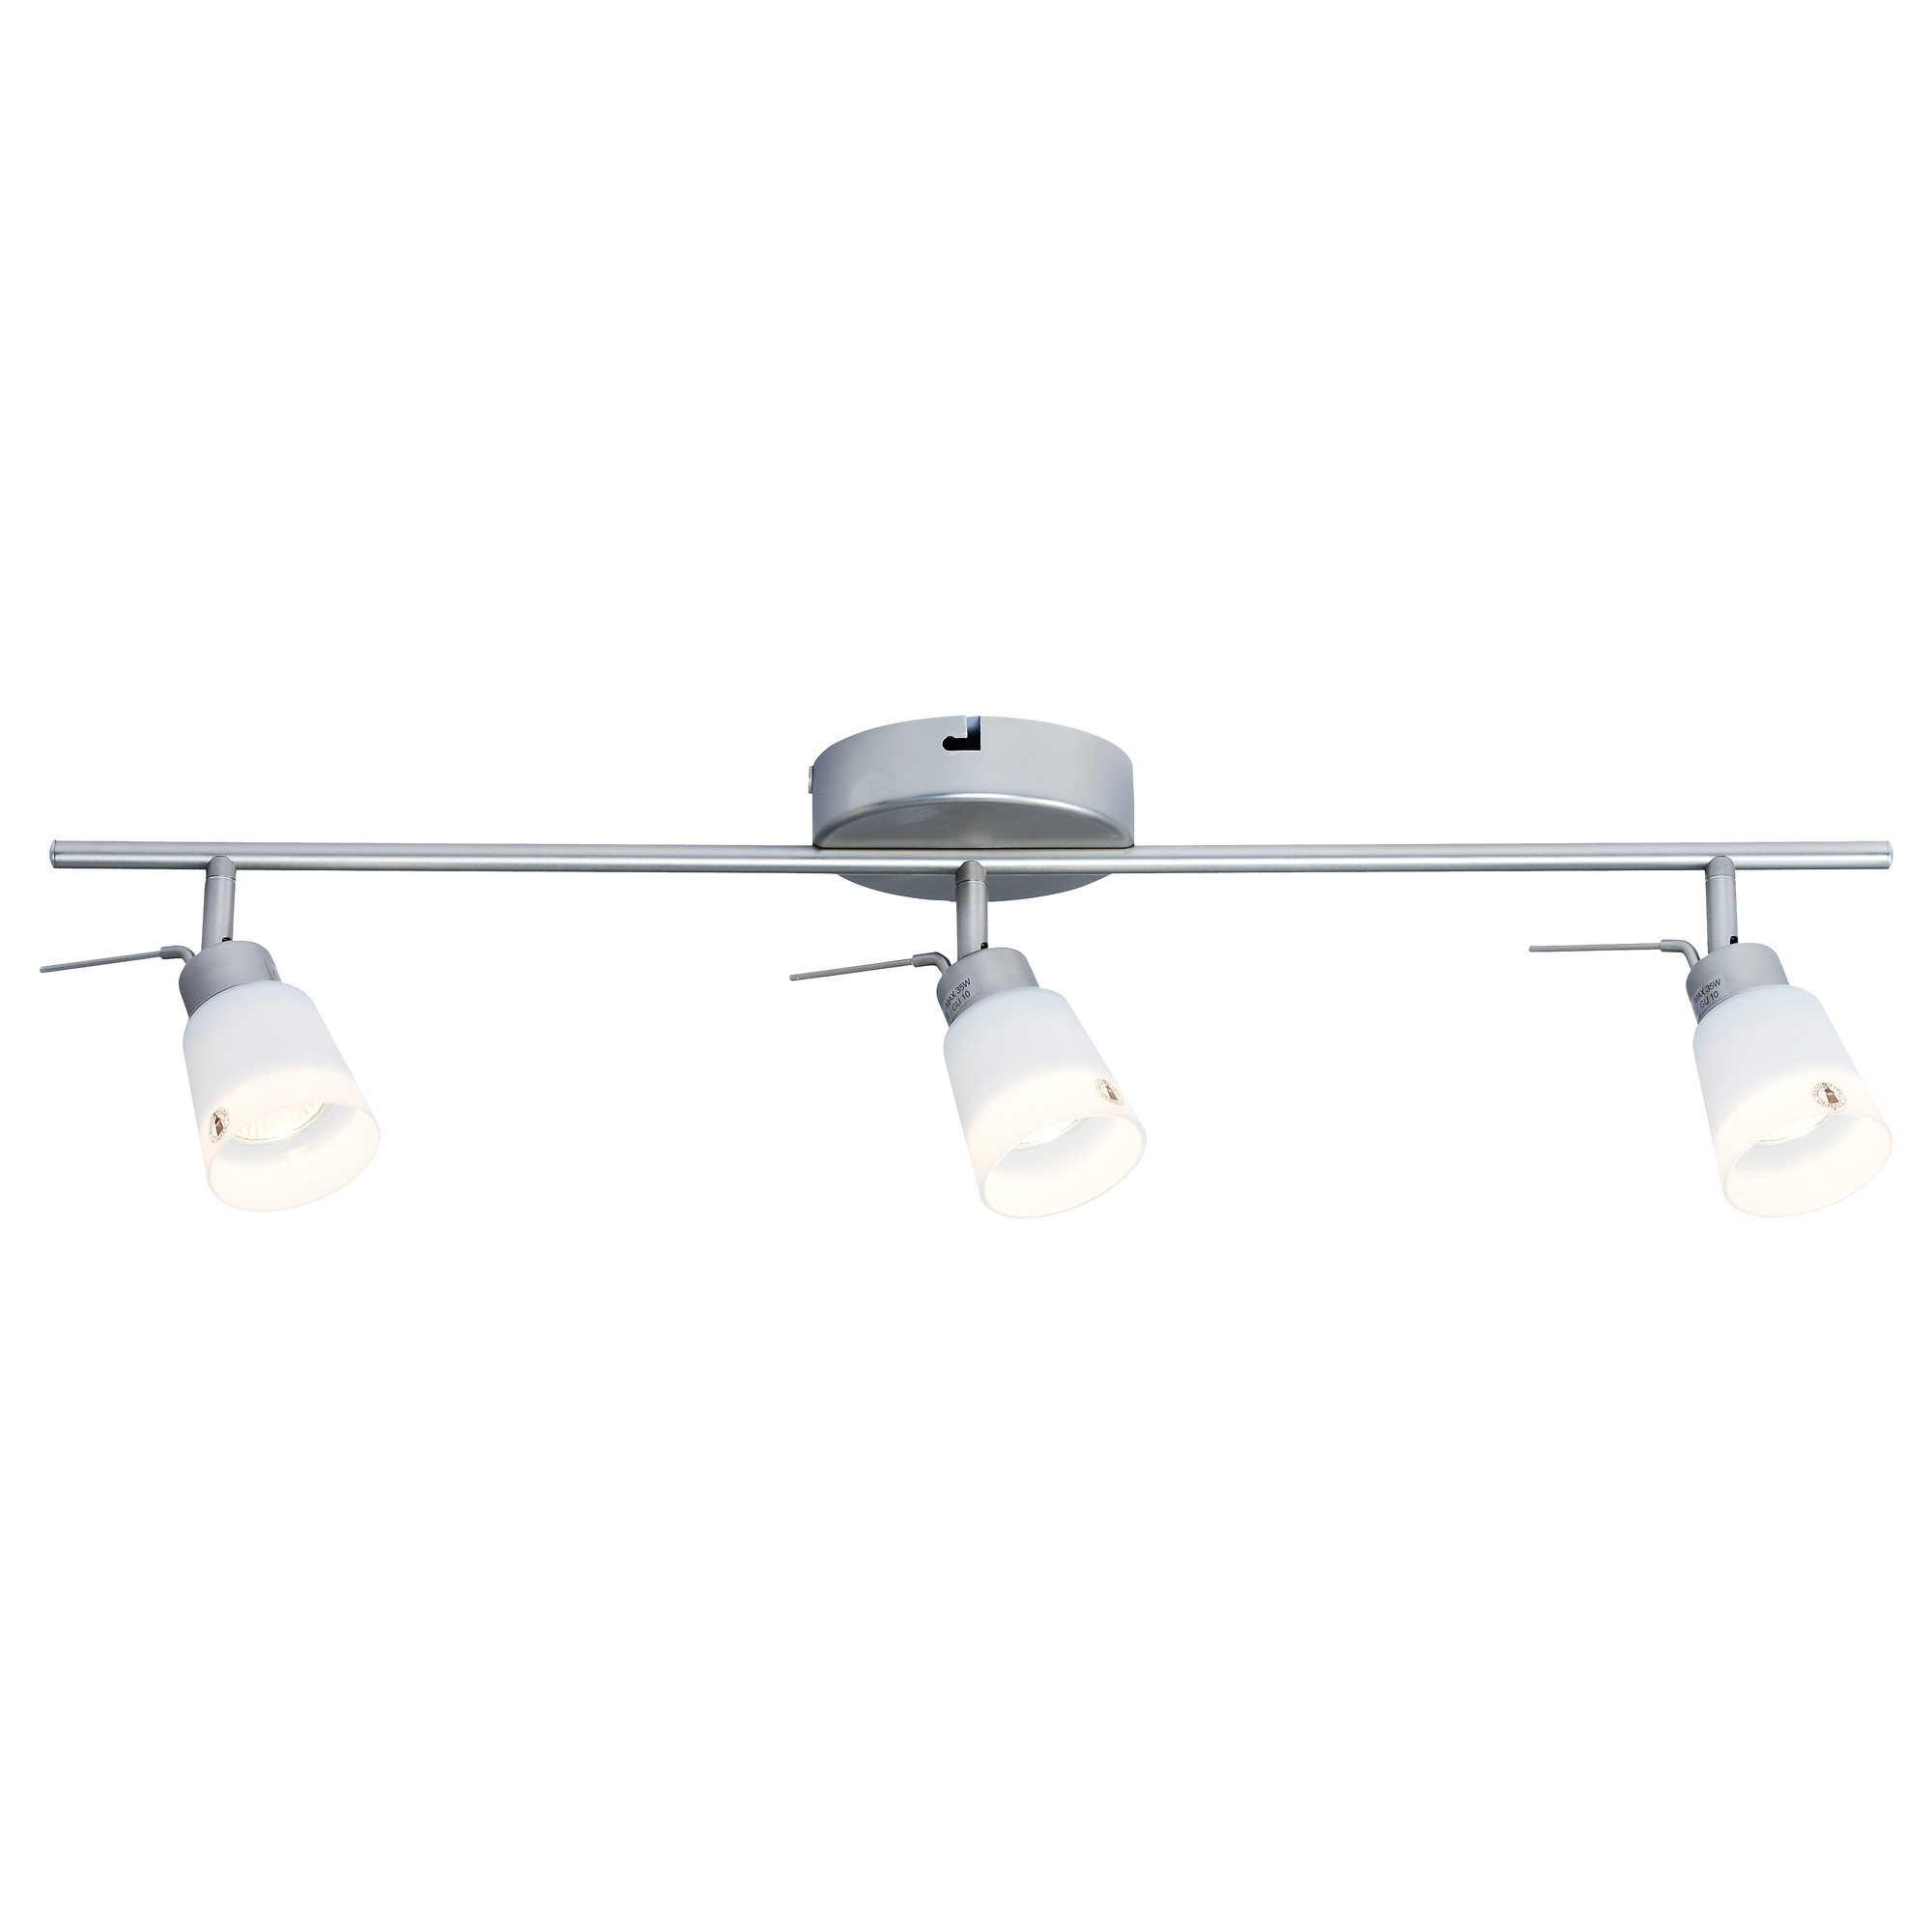 BASISK Ceiling track, 3 spotlights, nickel plated, white | HOME MUST ...